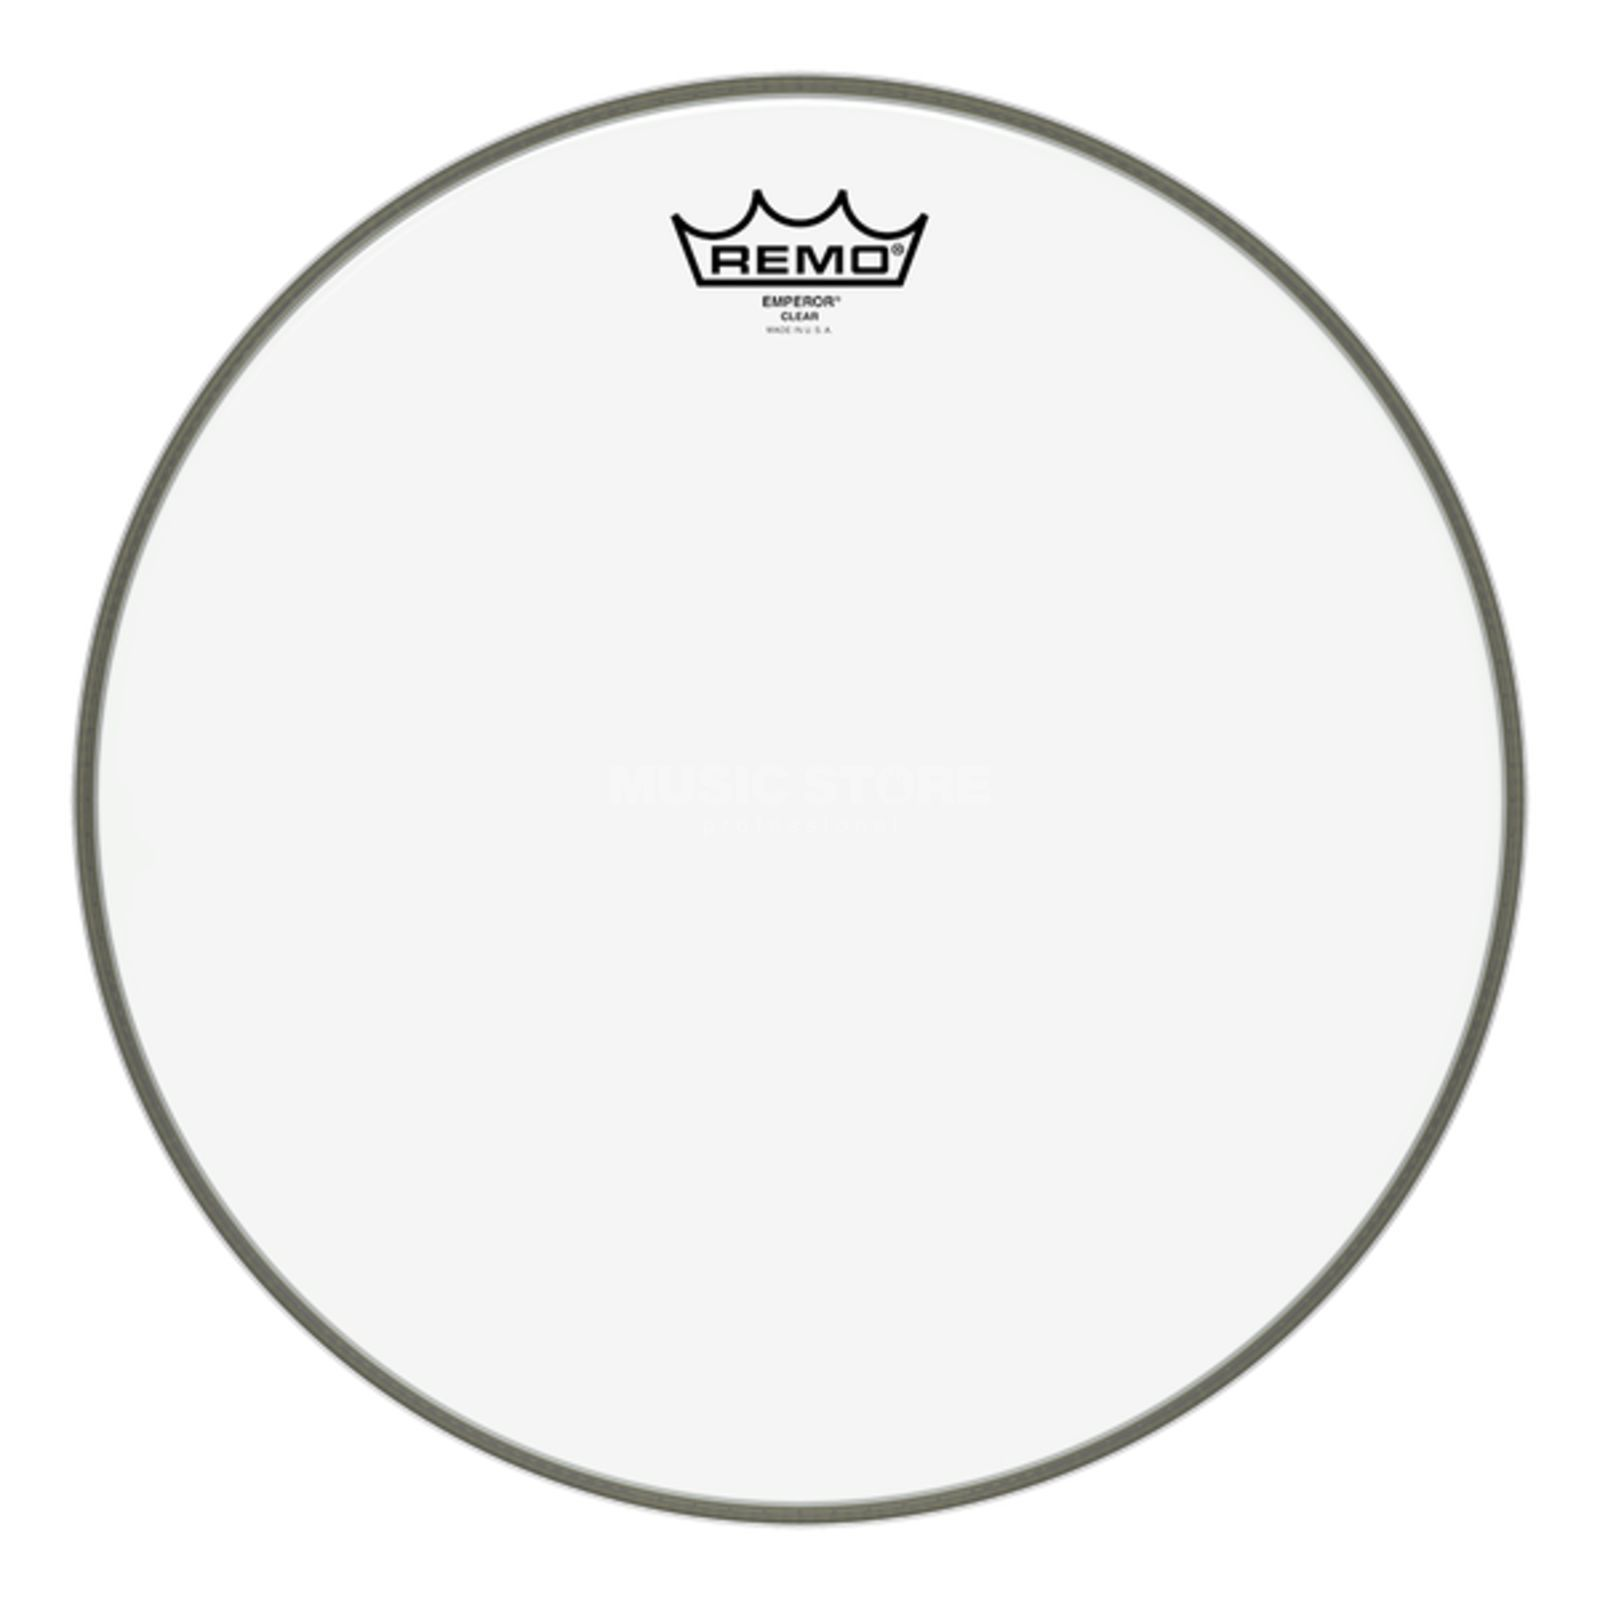 "Remo Emperor Clear 20"", BassDrum Batter/Reso Product Image"